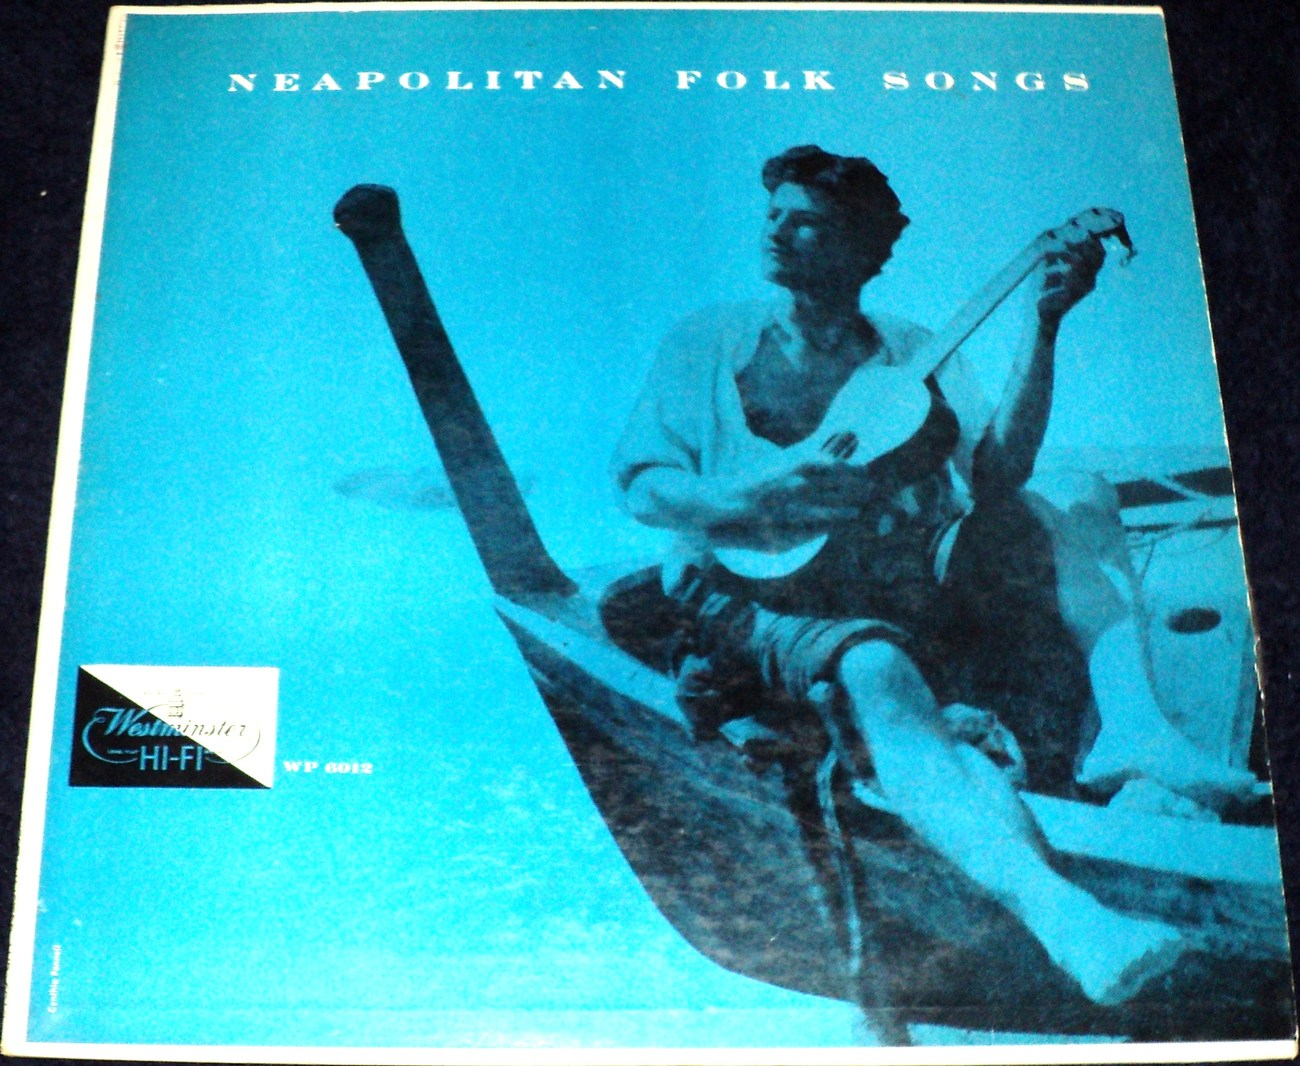 MIKLOS GAFNI /NEAPOLITAN FOLK SONGS LP